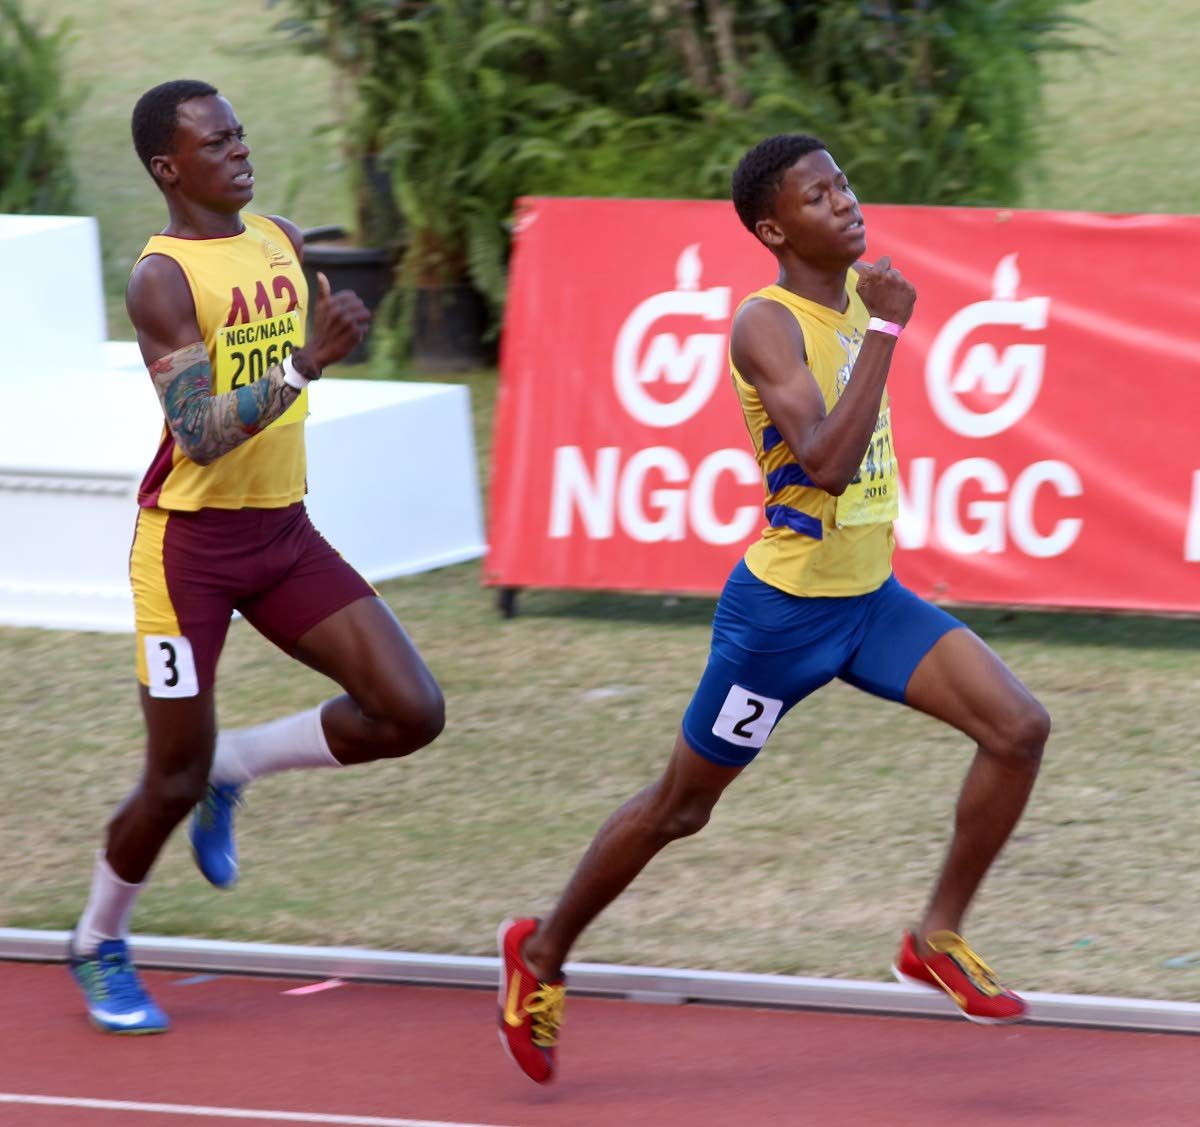 Mishak Peters, right, of Abilene Wildcats, wins the boys U17 800m final in a time of 2:03:54 secs, at the NGC/NAAA Jr Championships, Hasely Crawford Stadium, Port of Spain, yesterday.